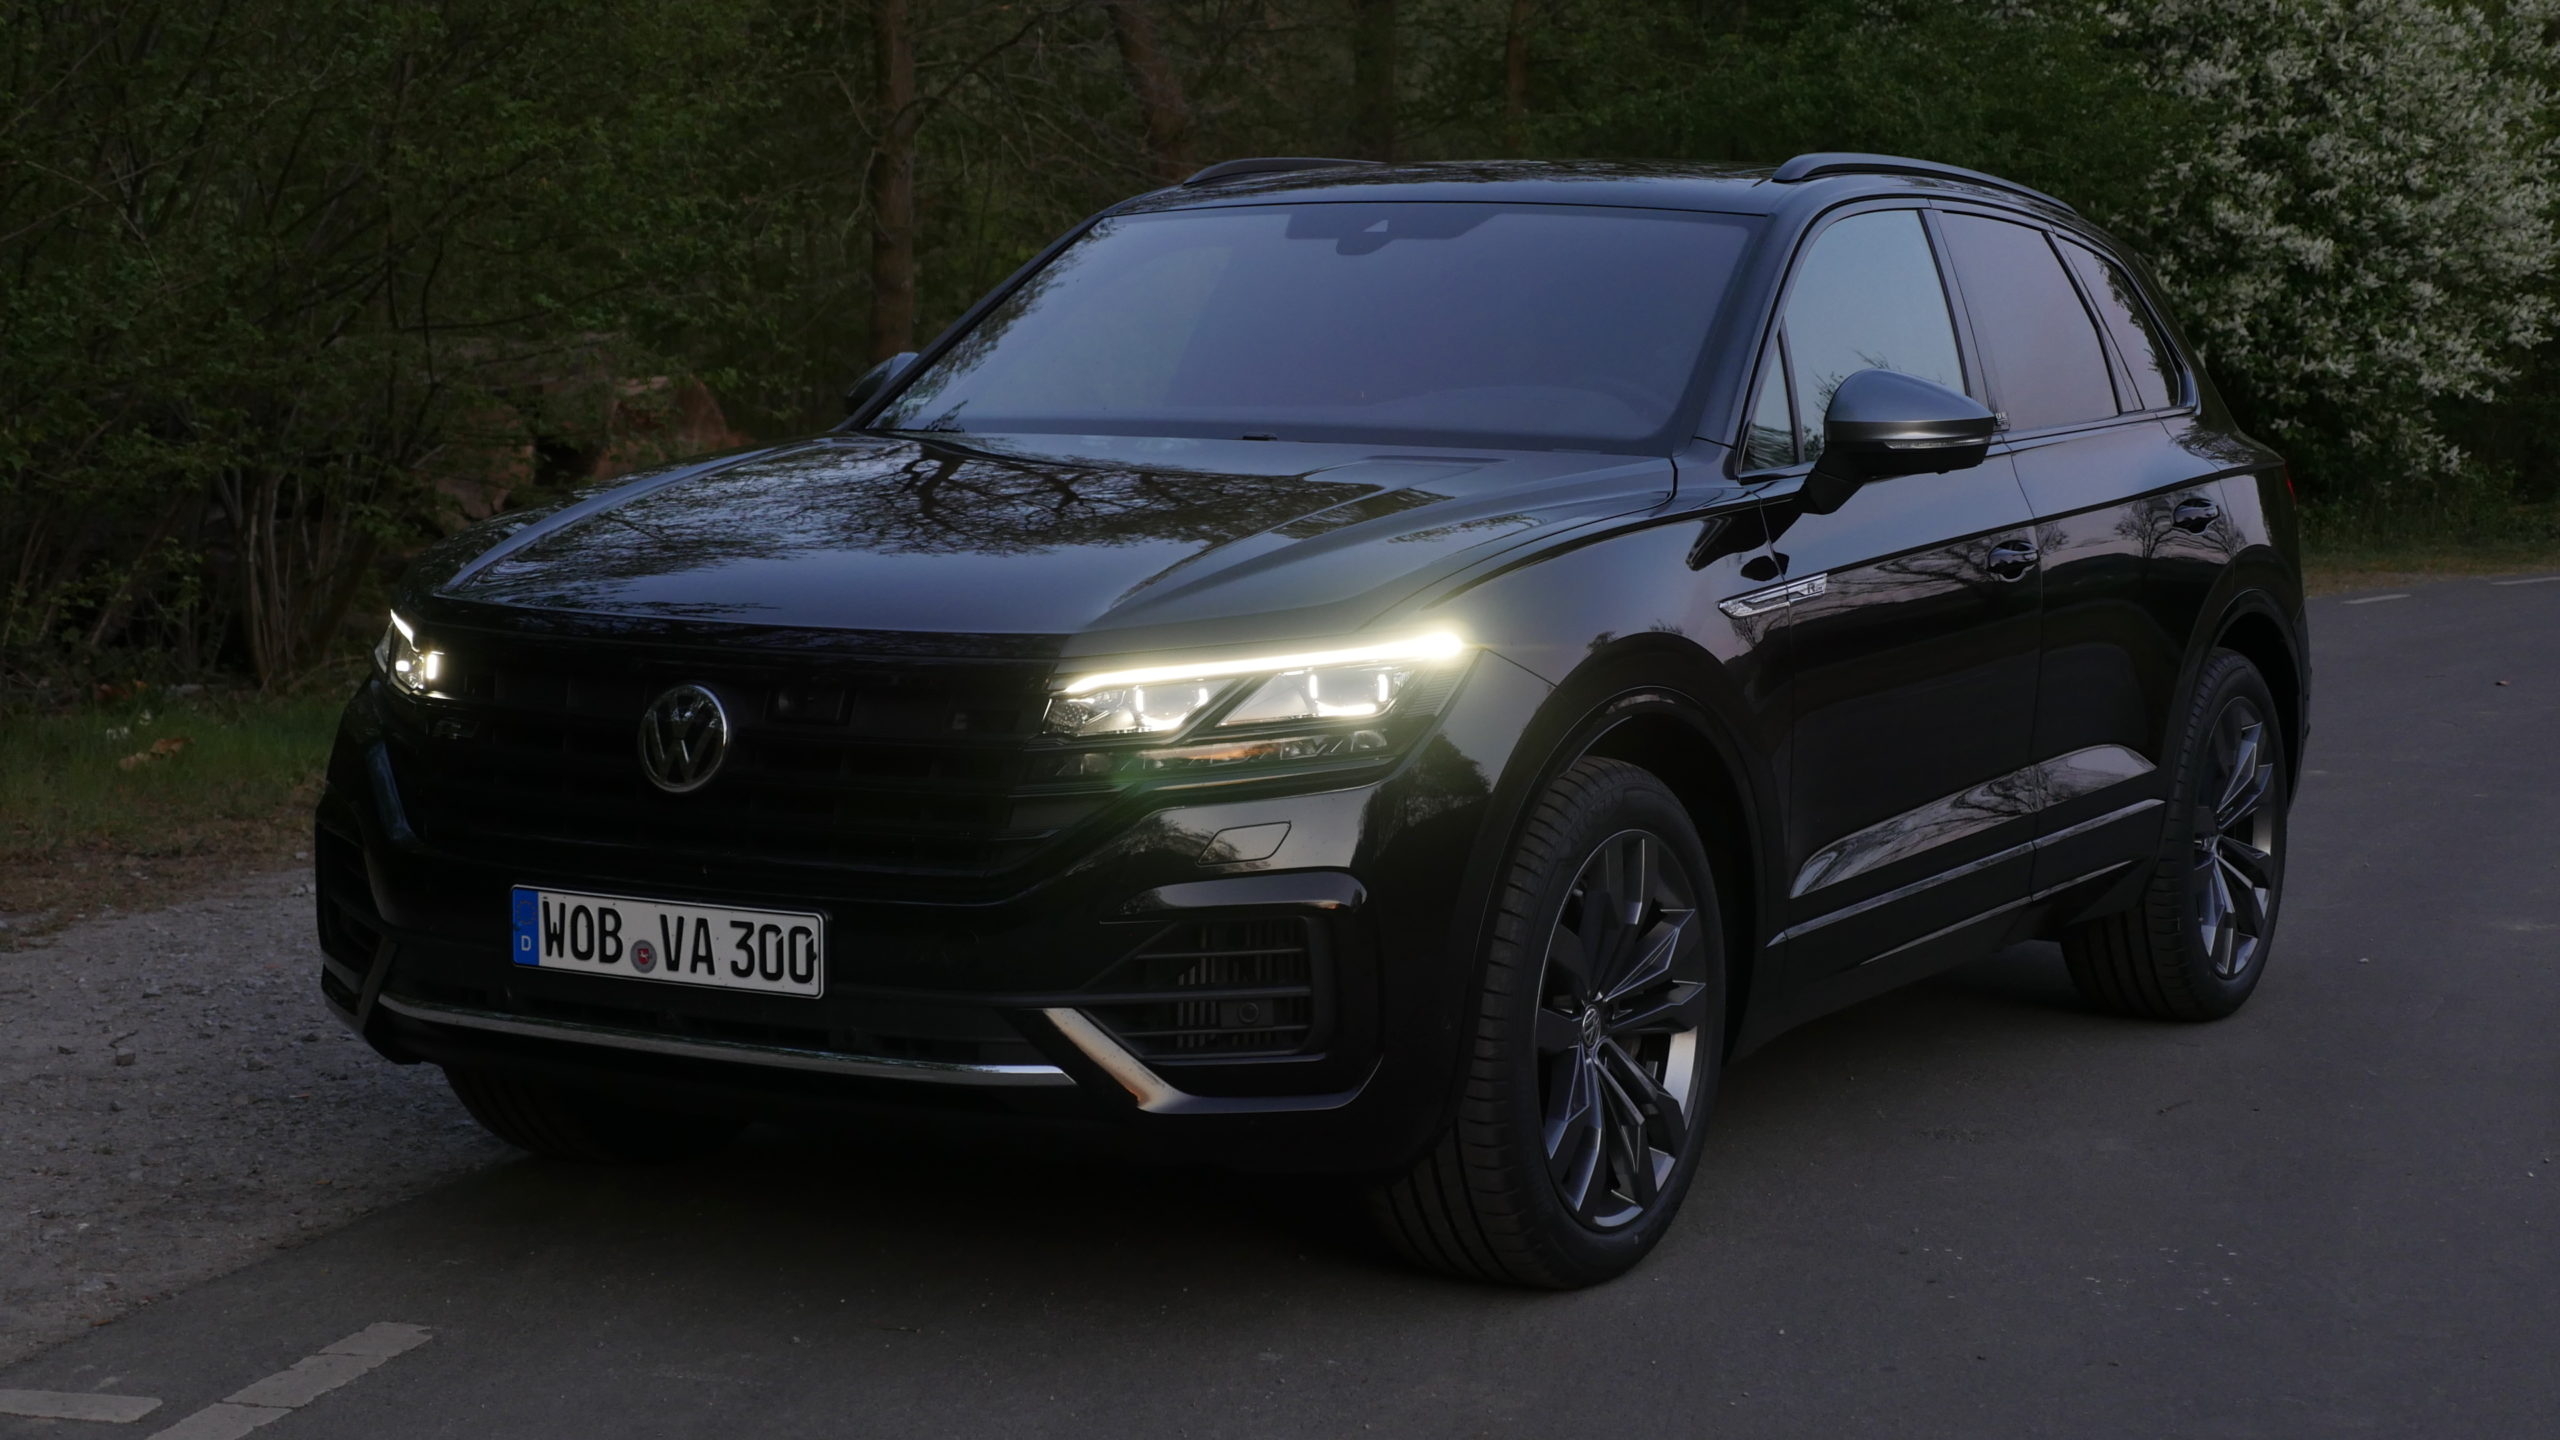 2020 Volkswagen Touareg Concept and Review